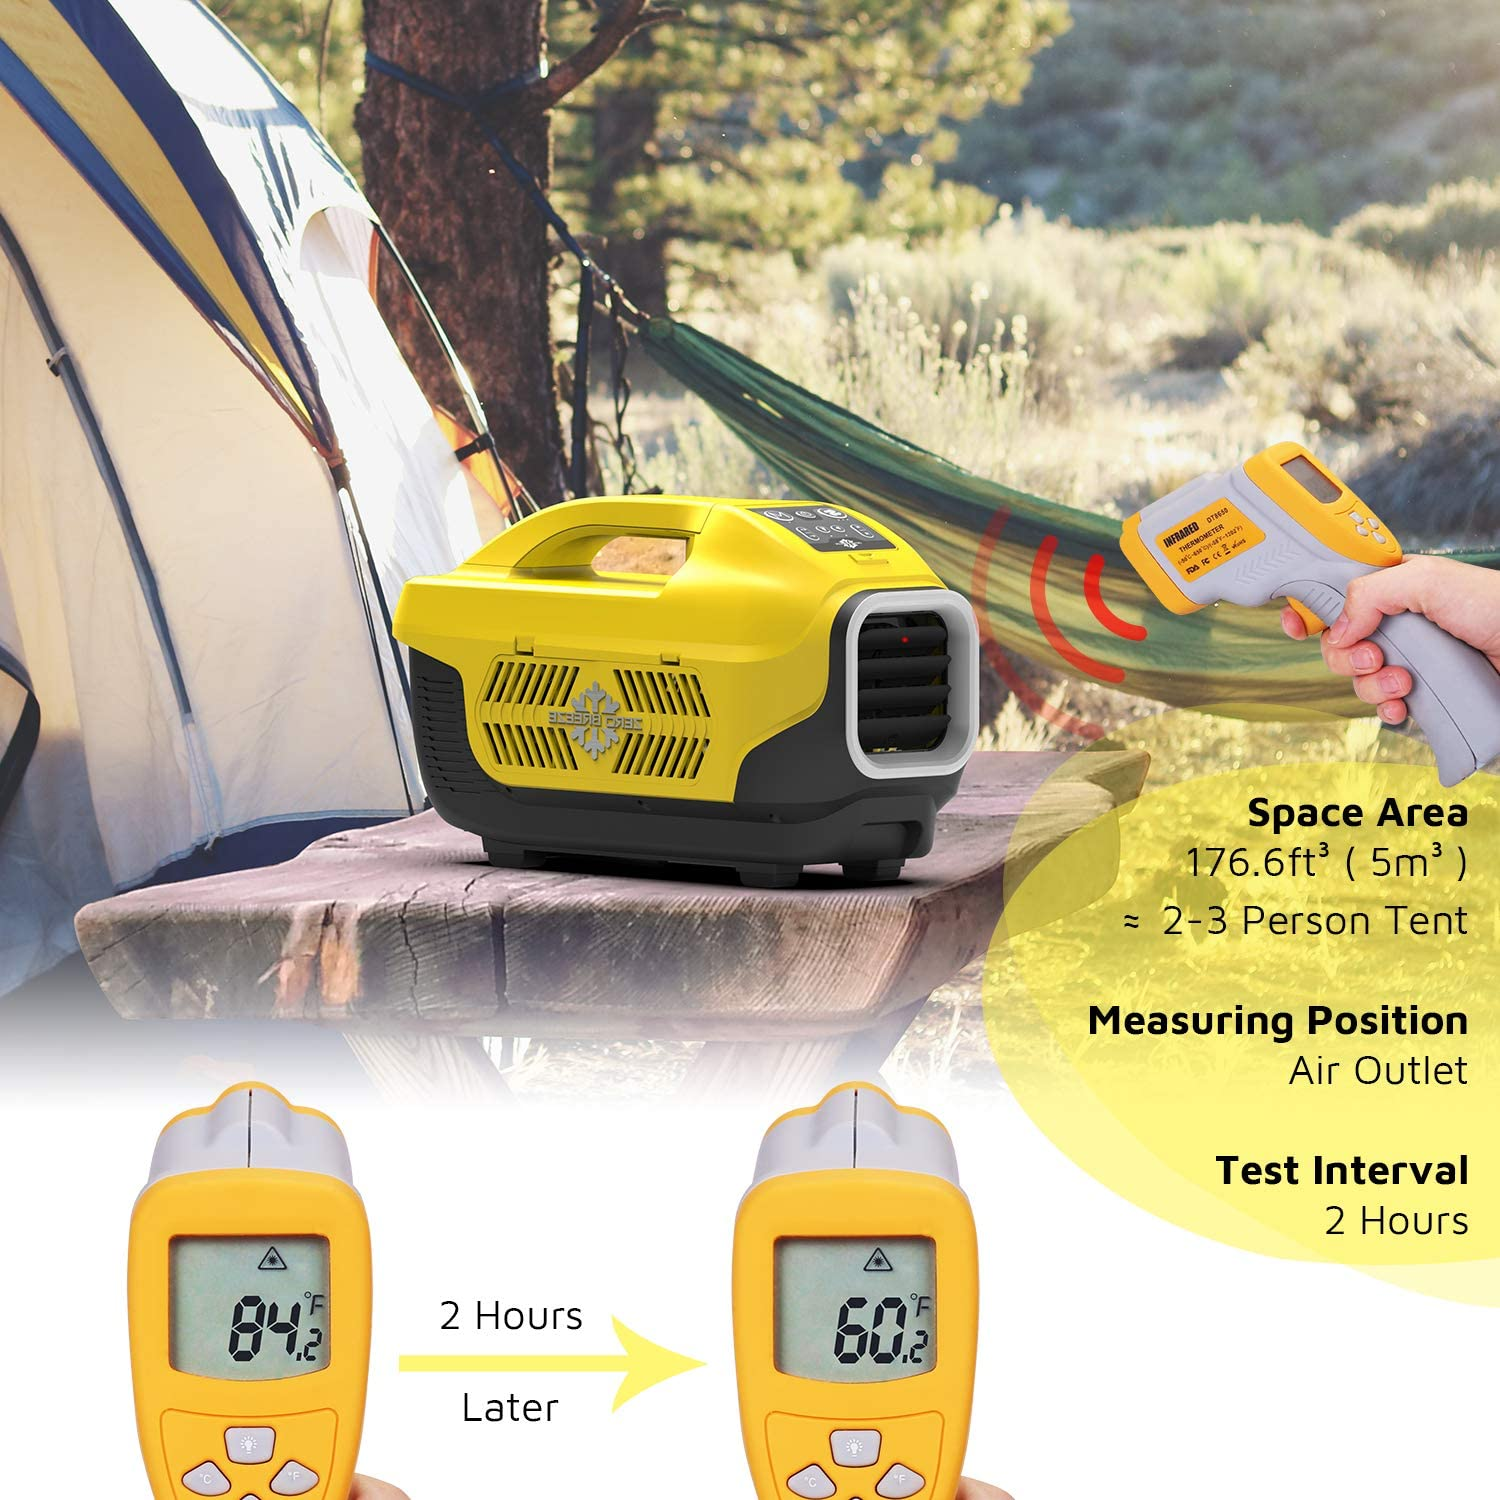 Zero Breeze Z19-Y Portable Air Conditioner for Camping, 5-in-1 Multi Functions, Suitable for 1-4 Per…